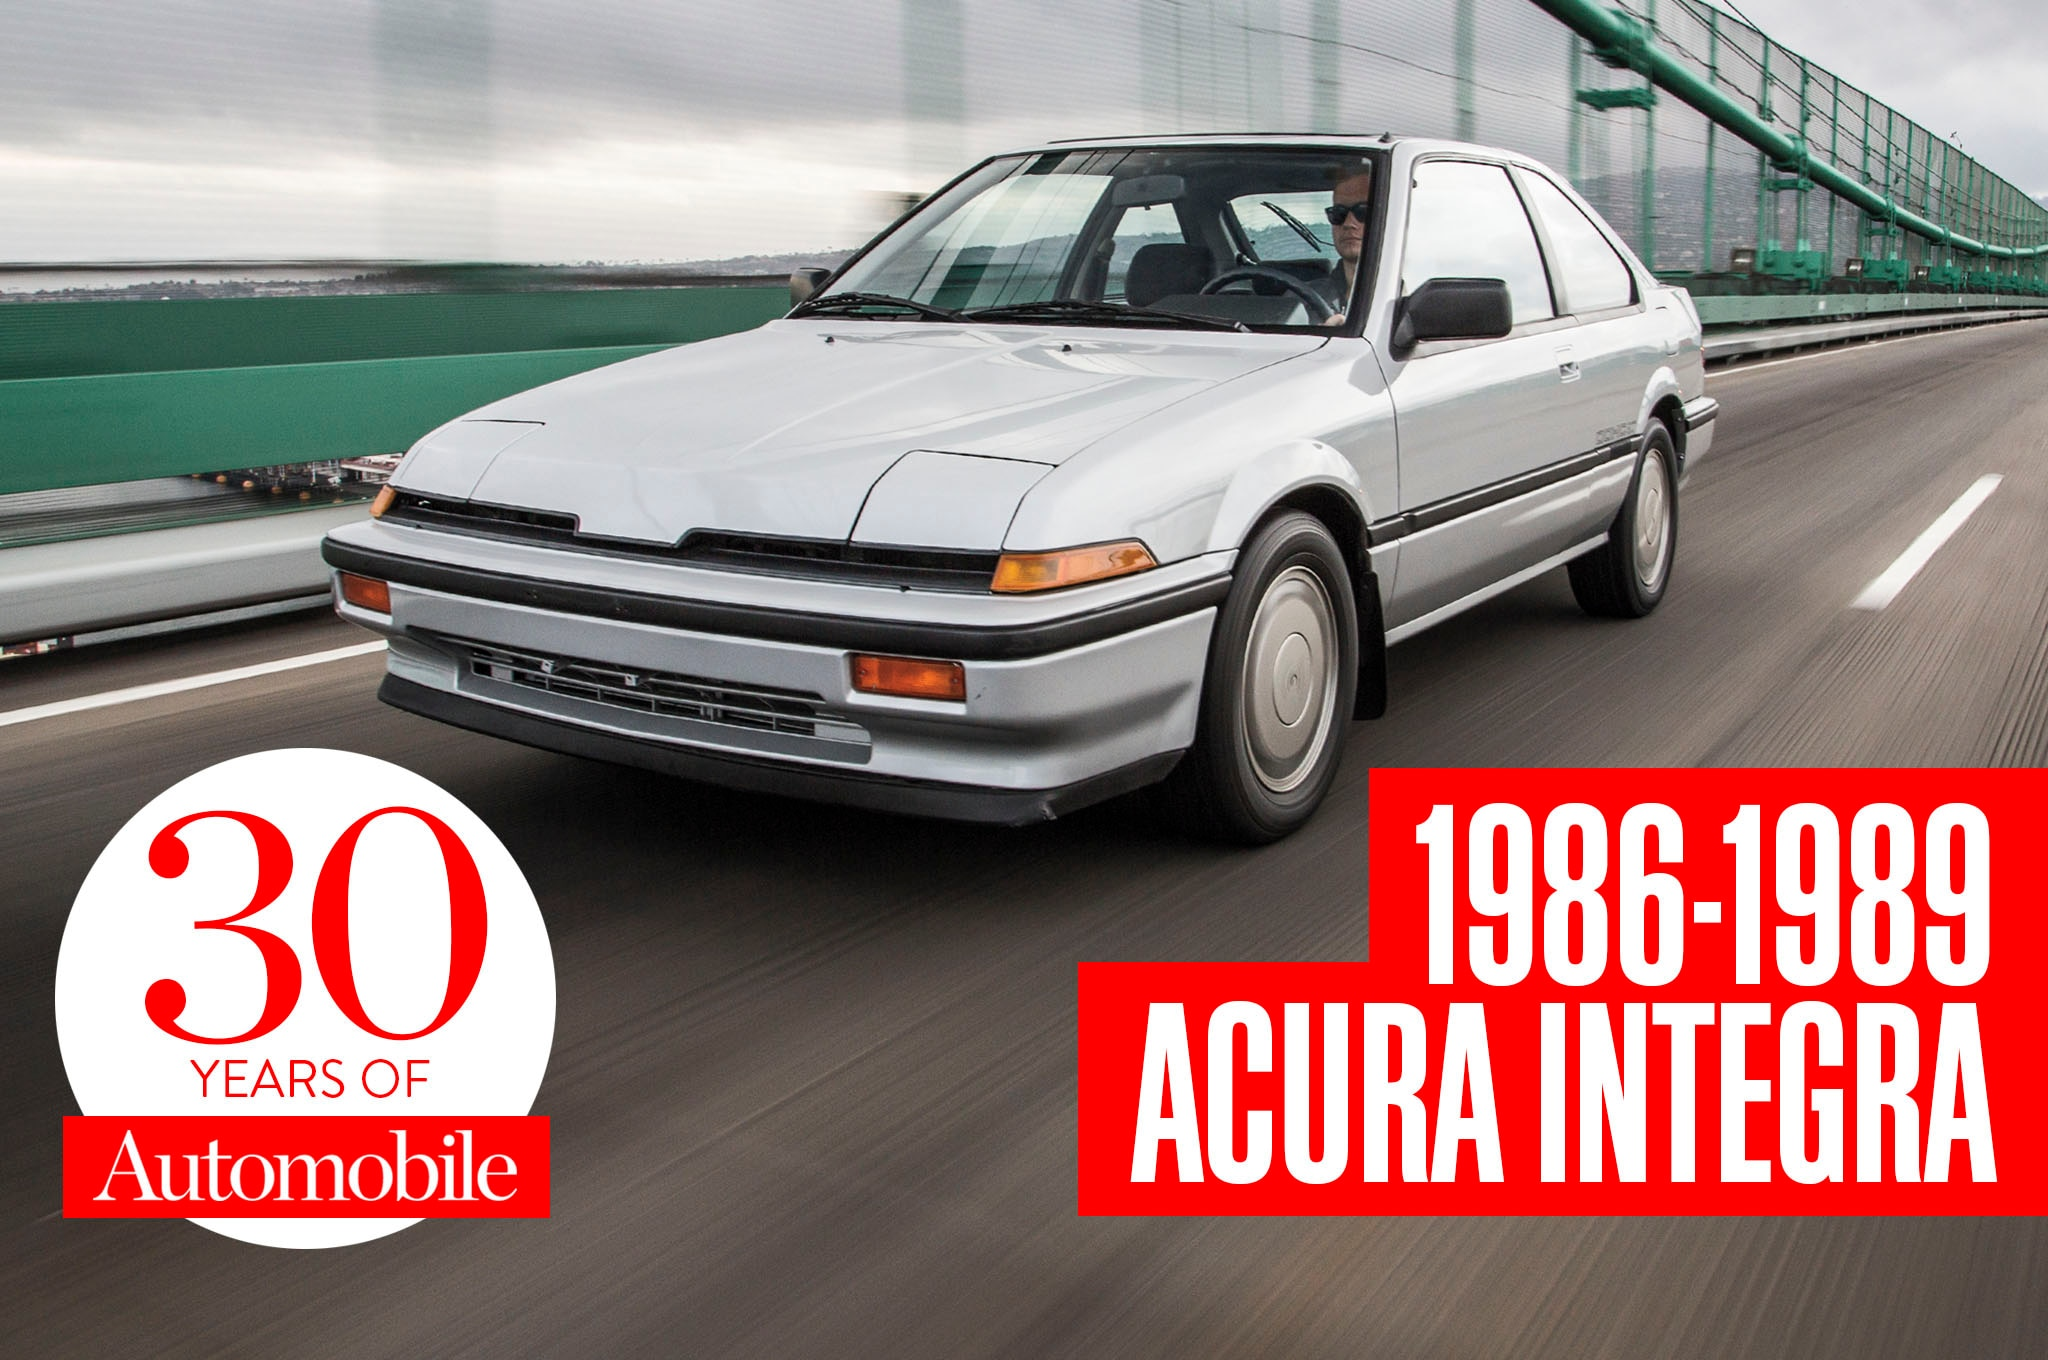 89 Acura Integra Fuse Box Wiring Library Collectible Classic 1986 1989 1 26